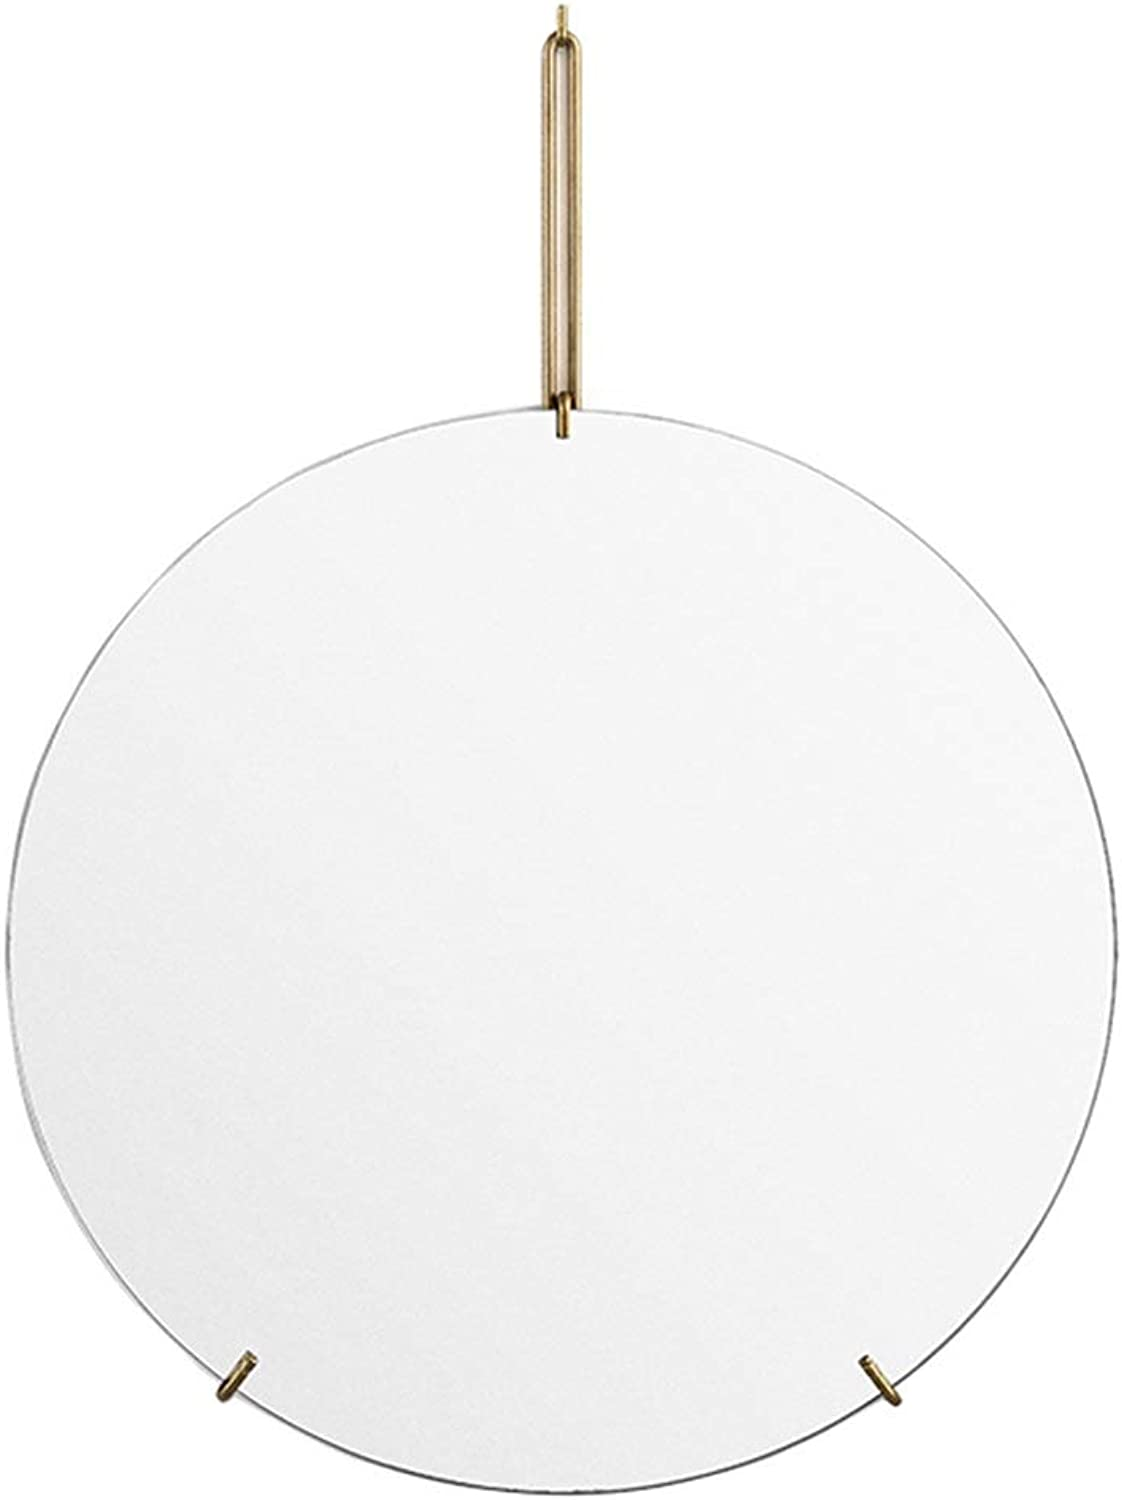 Round Wall Mirror Hanging Metal Makeup Mirrors Bathroom Nordic Shaving Iron Mirrors Decorative for Apartment Living Room Bedroom